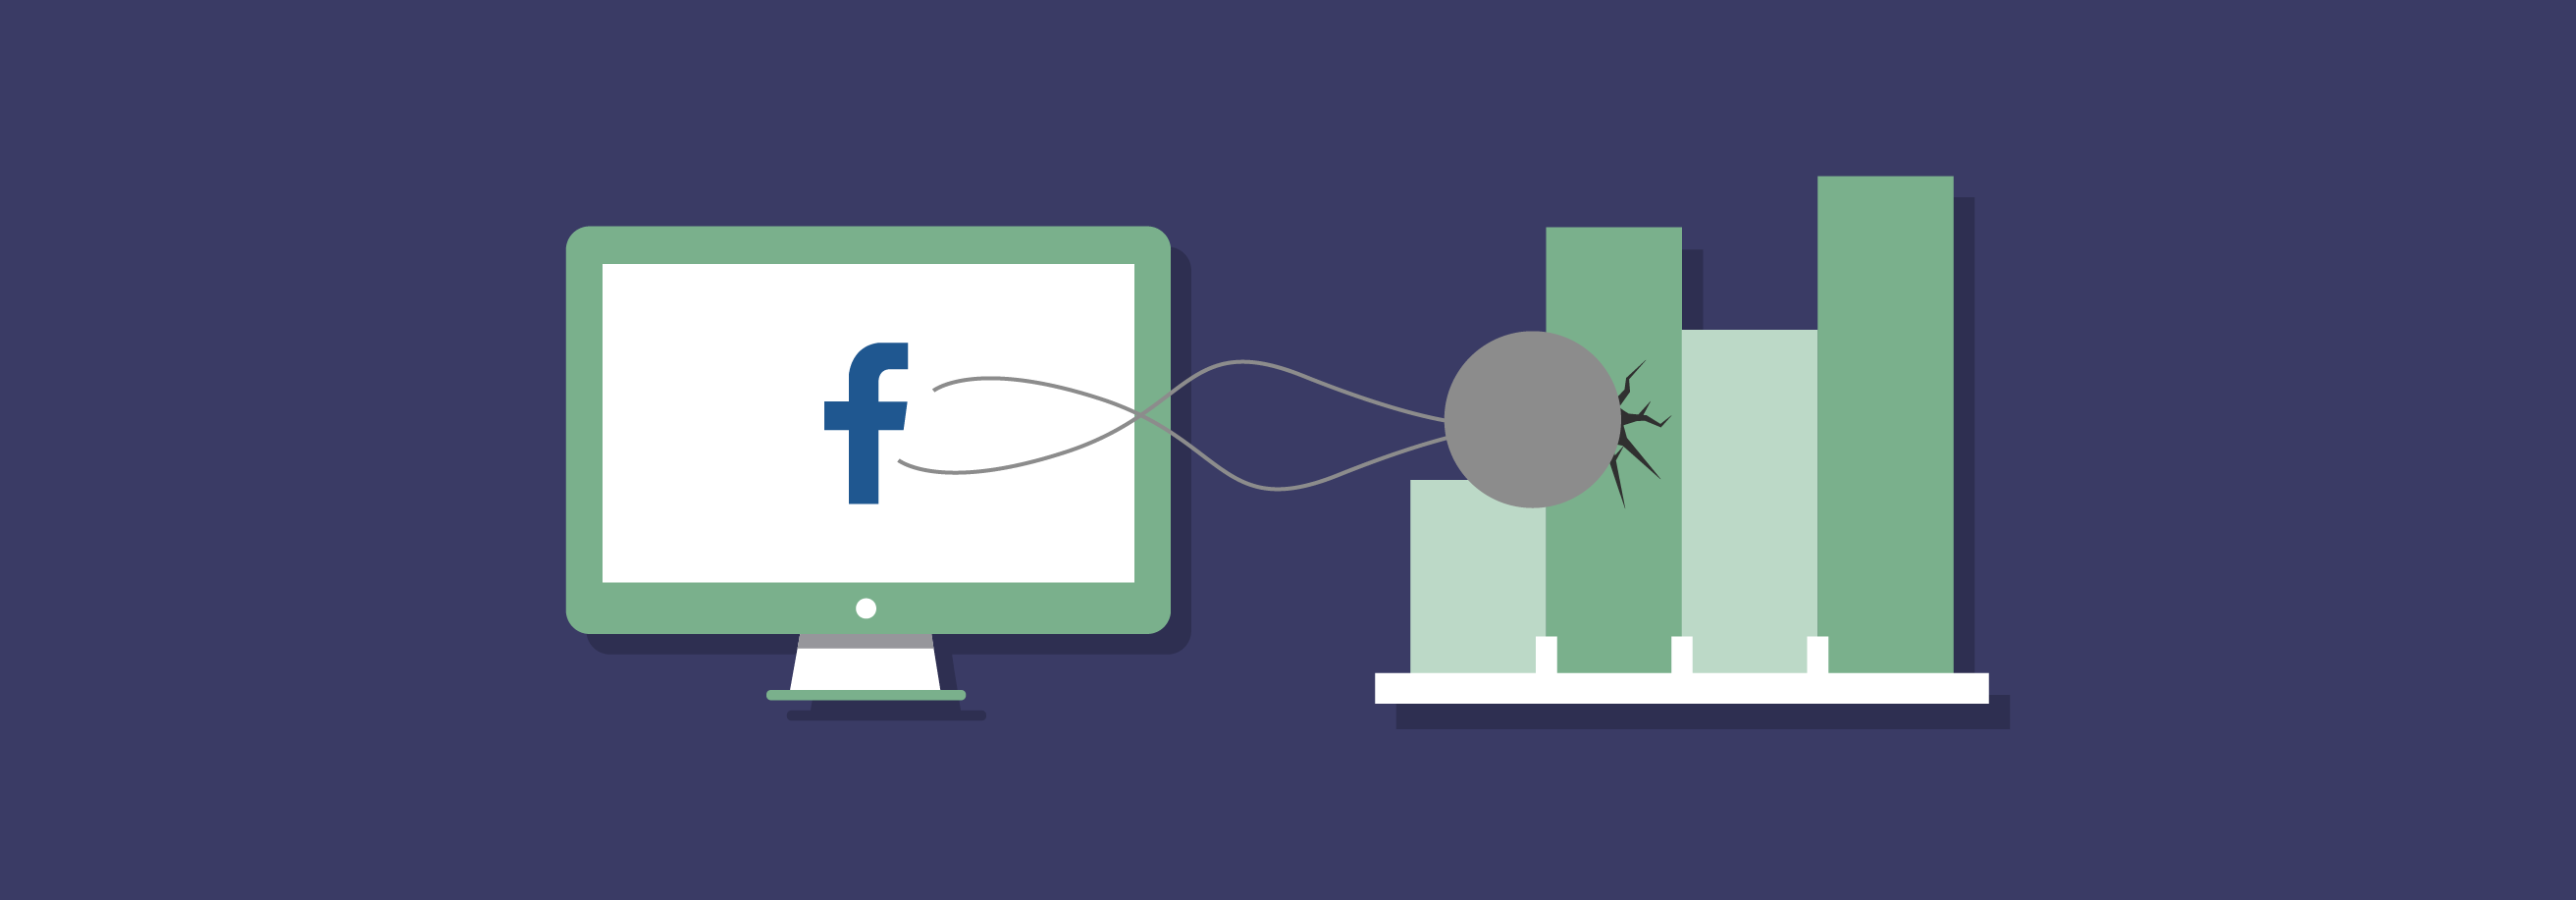 Case Study: How Facebook Ad Fatigue Can Destroy Your Campaign Metrics